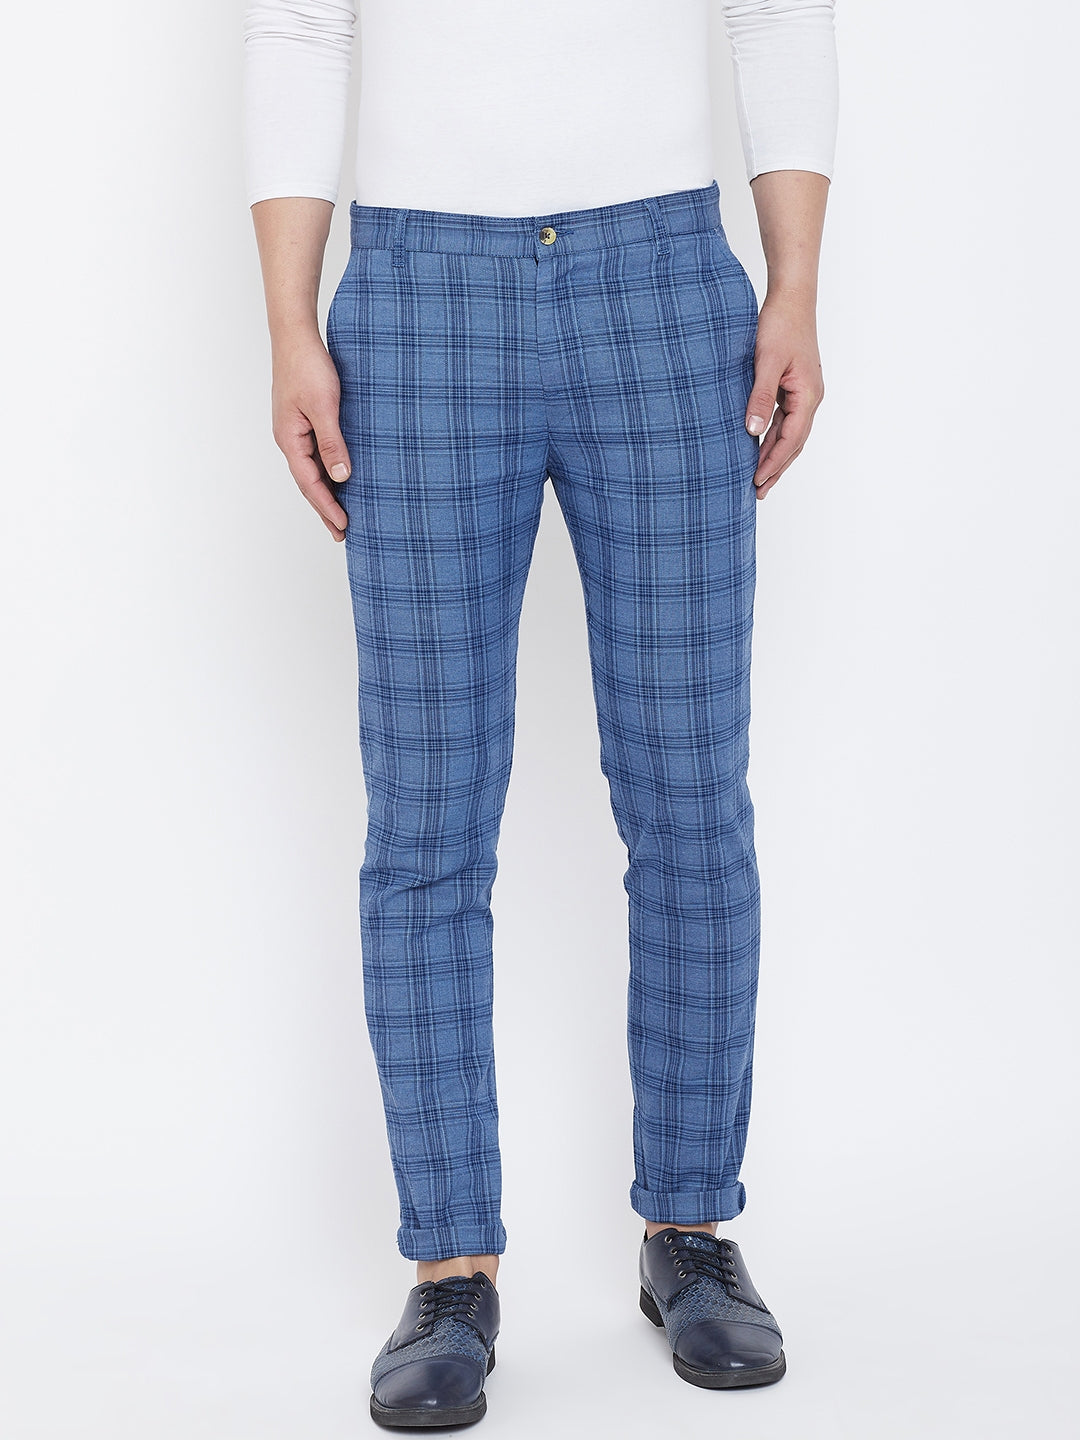 JUMP USA Men Blue Check Slim Fit Cotton Casual Trousers - JUMP USA